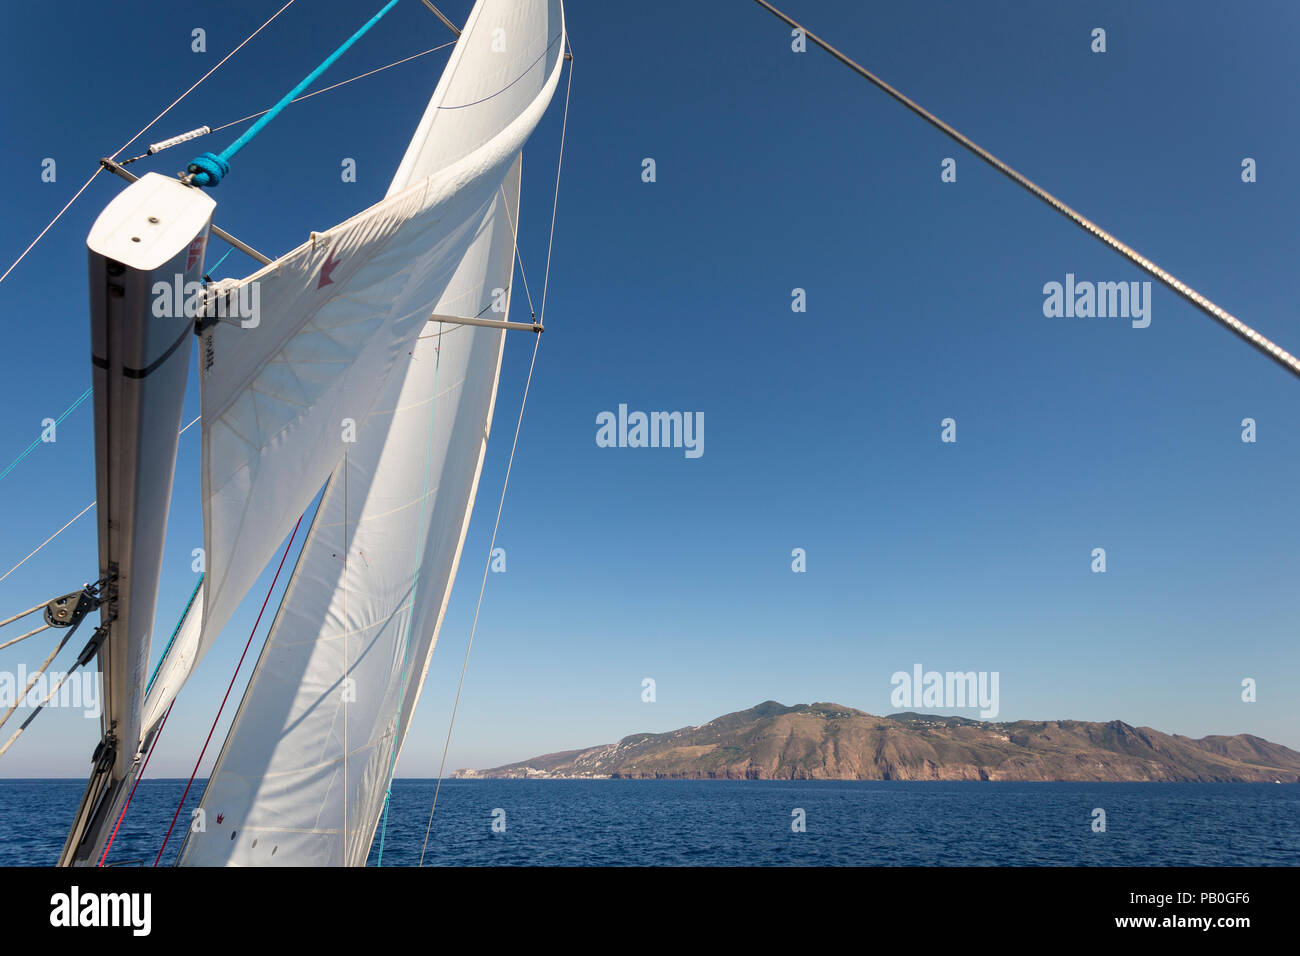 Sailing the Aeolian islands, Lipari, Sicily. - Stock Image